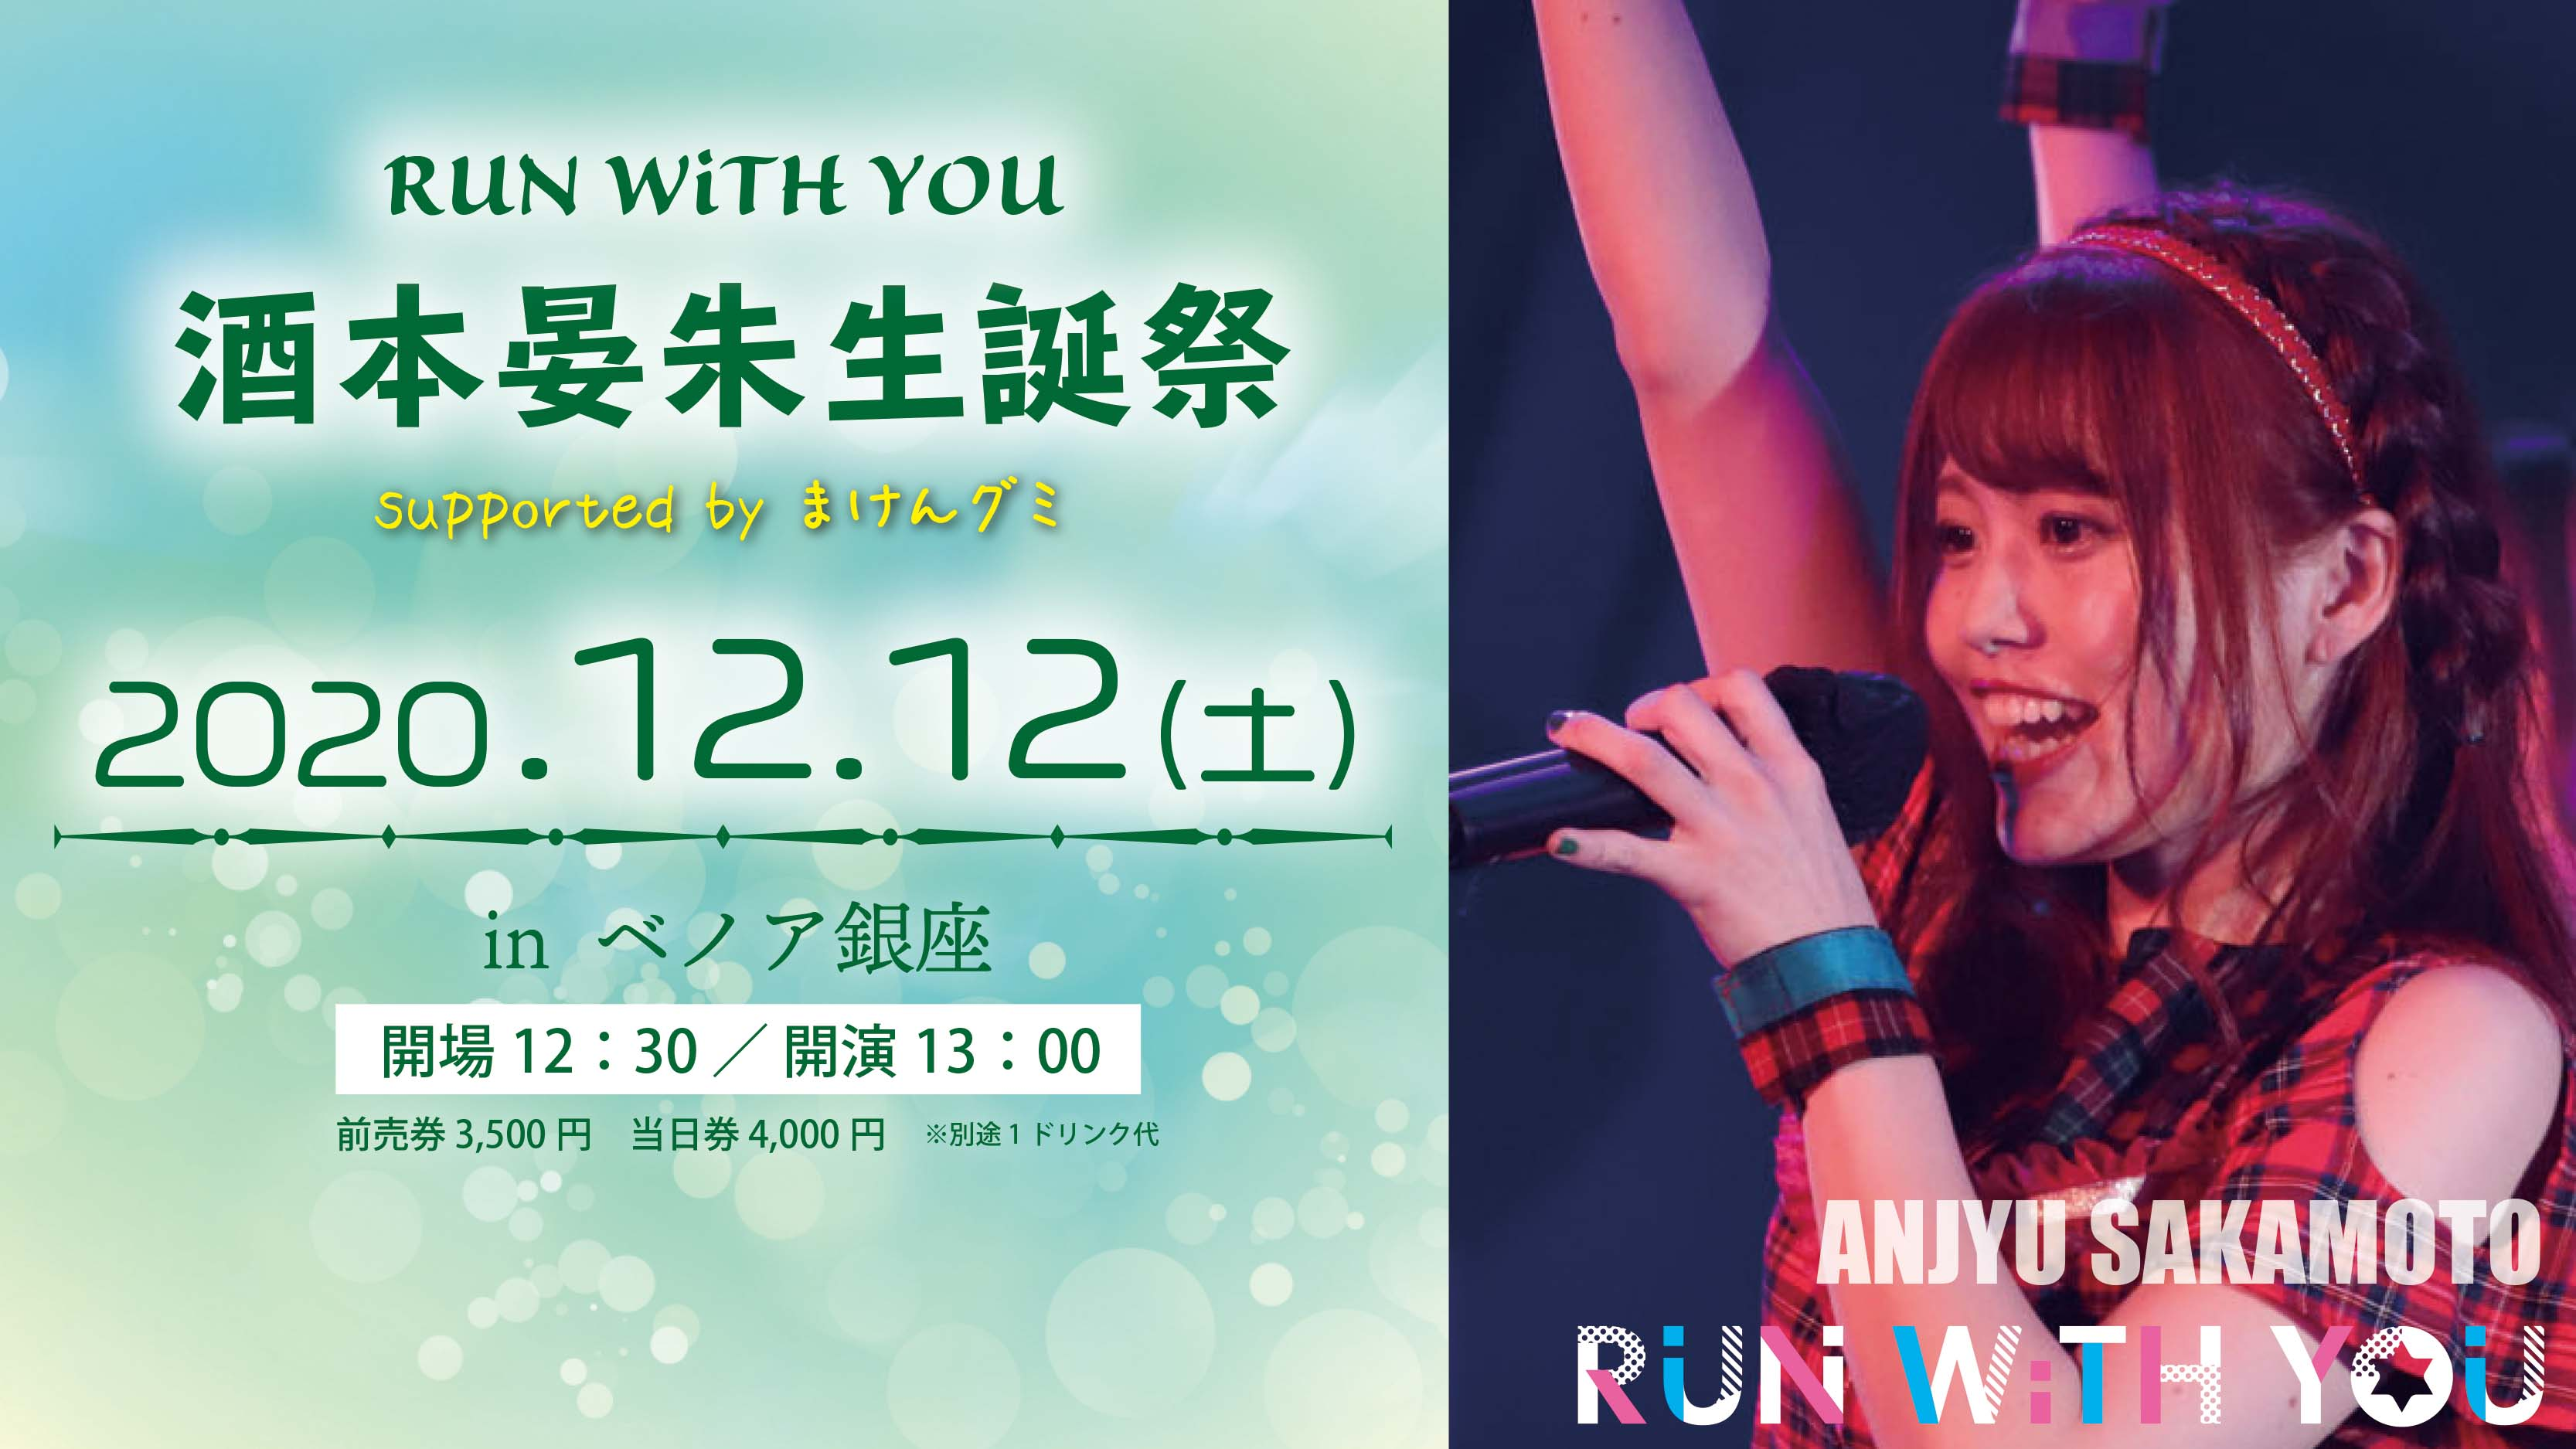 RUN WiTH YOU 酒本晏朱生誕祭 supported byまけんグミ